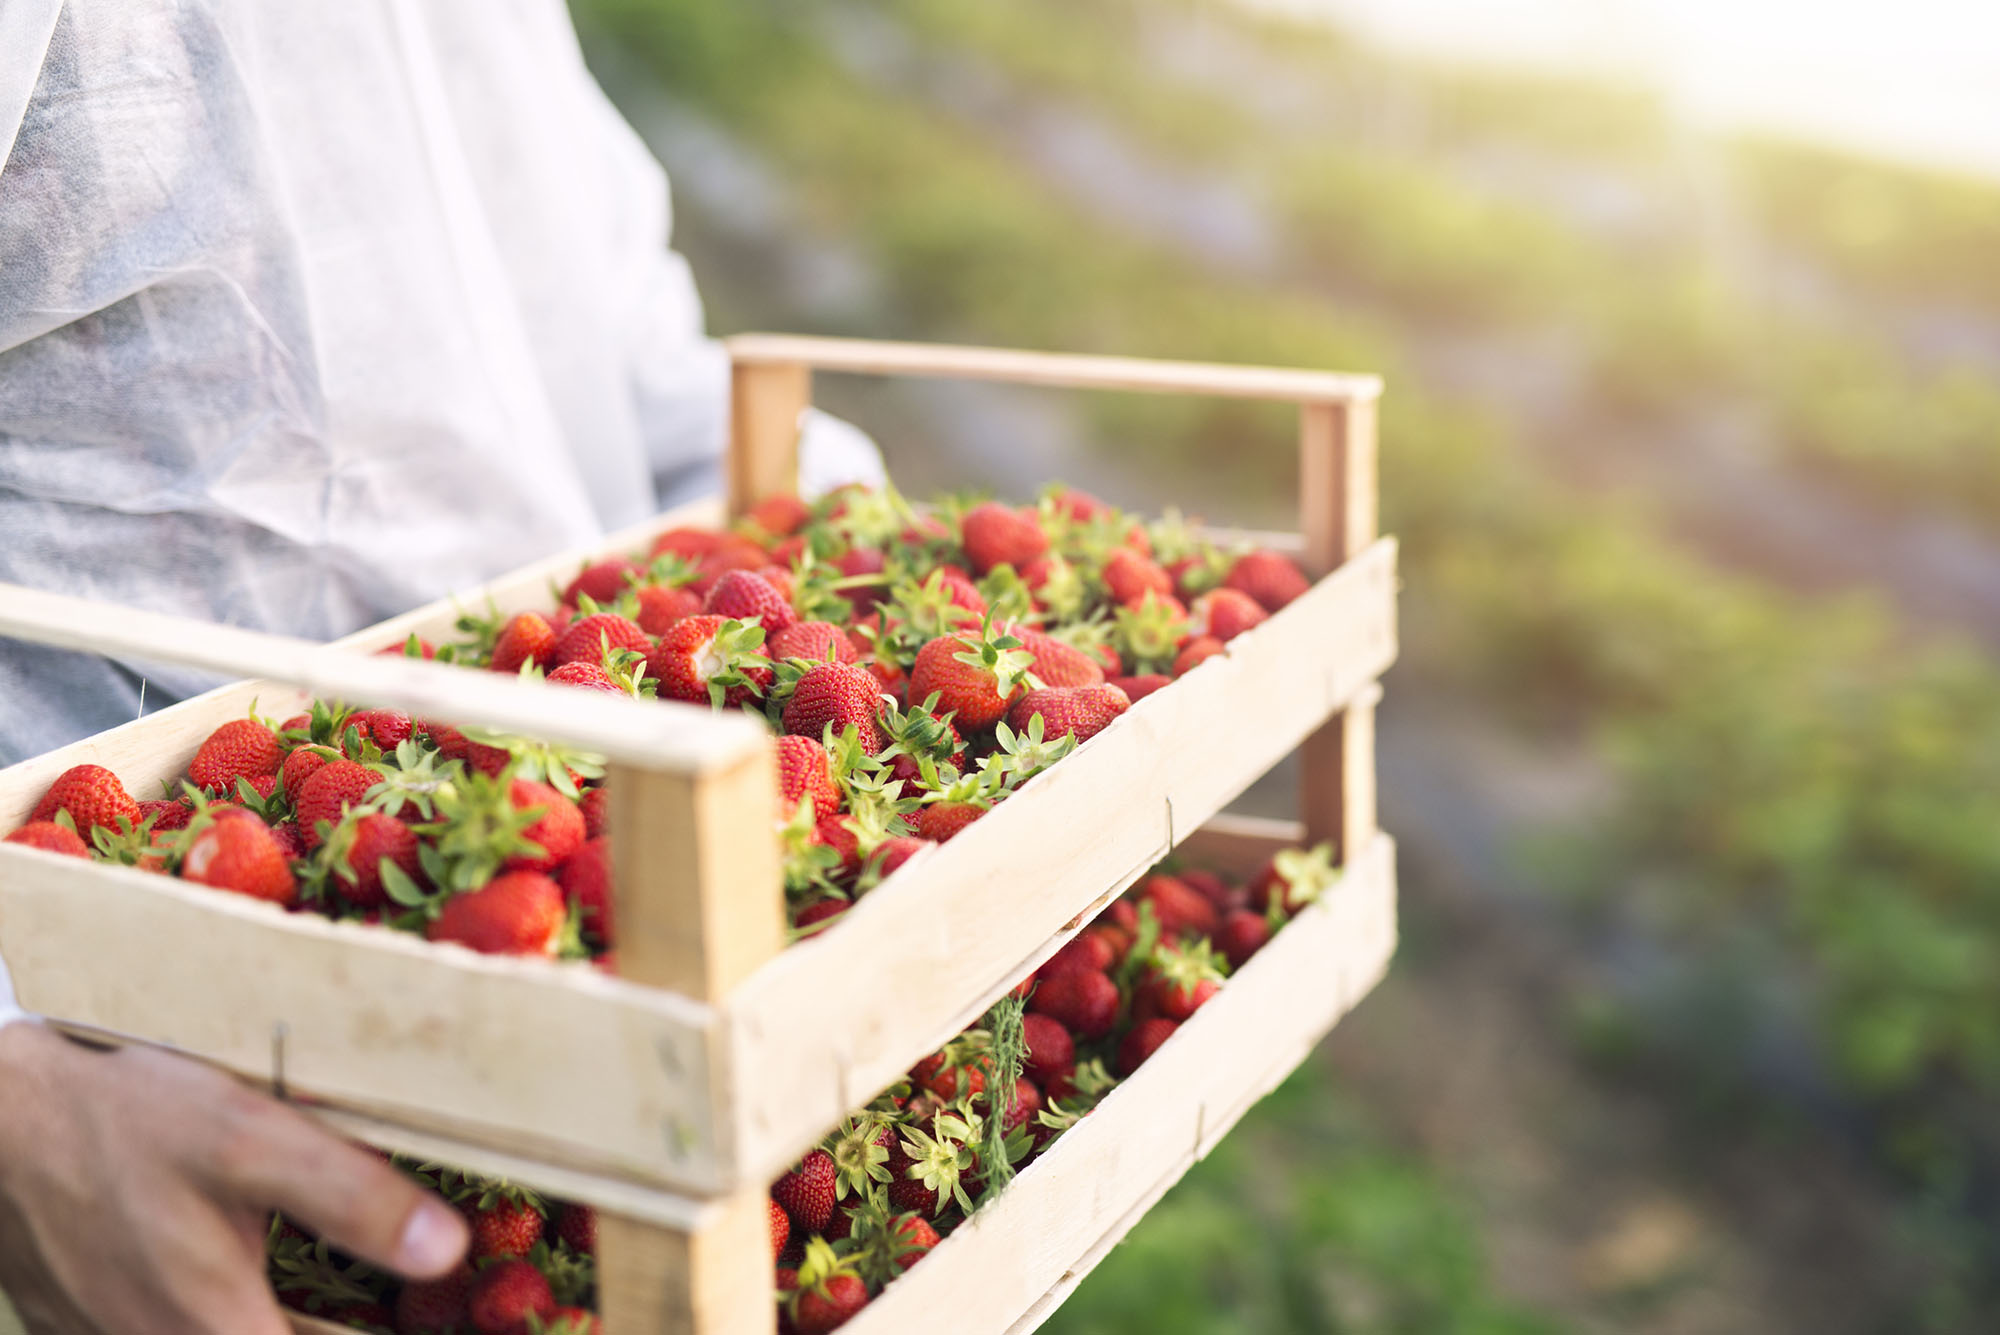 Go Strawberry Picking At A Local Farm